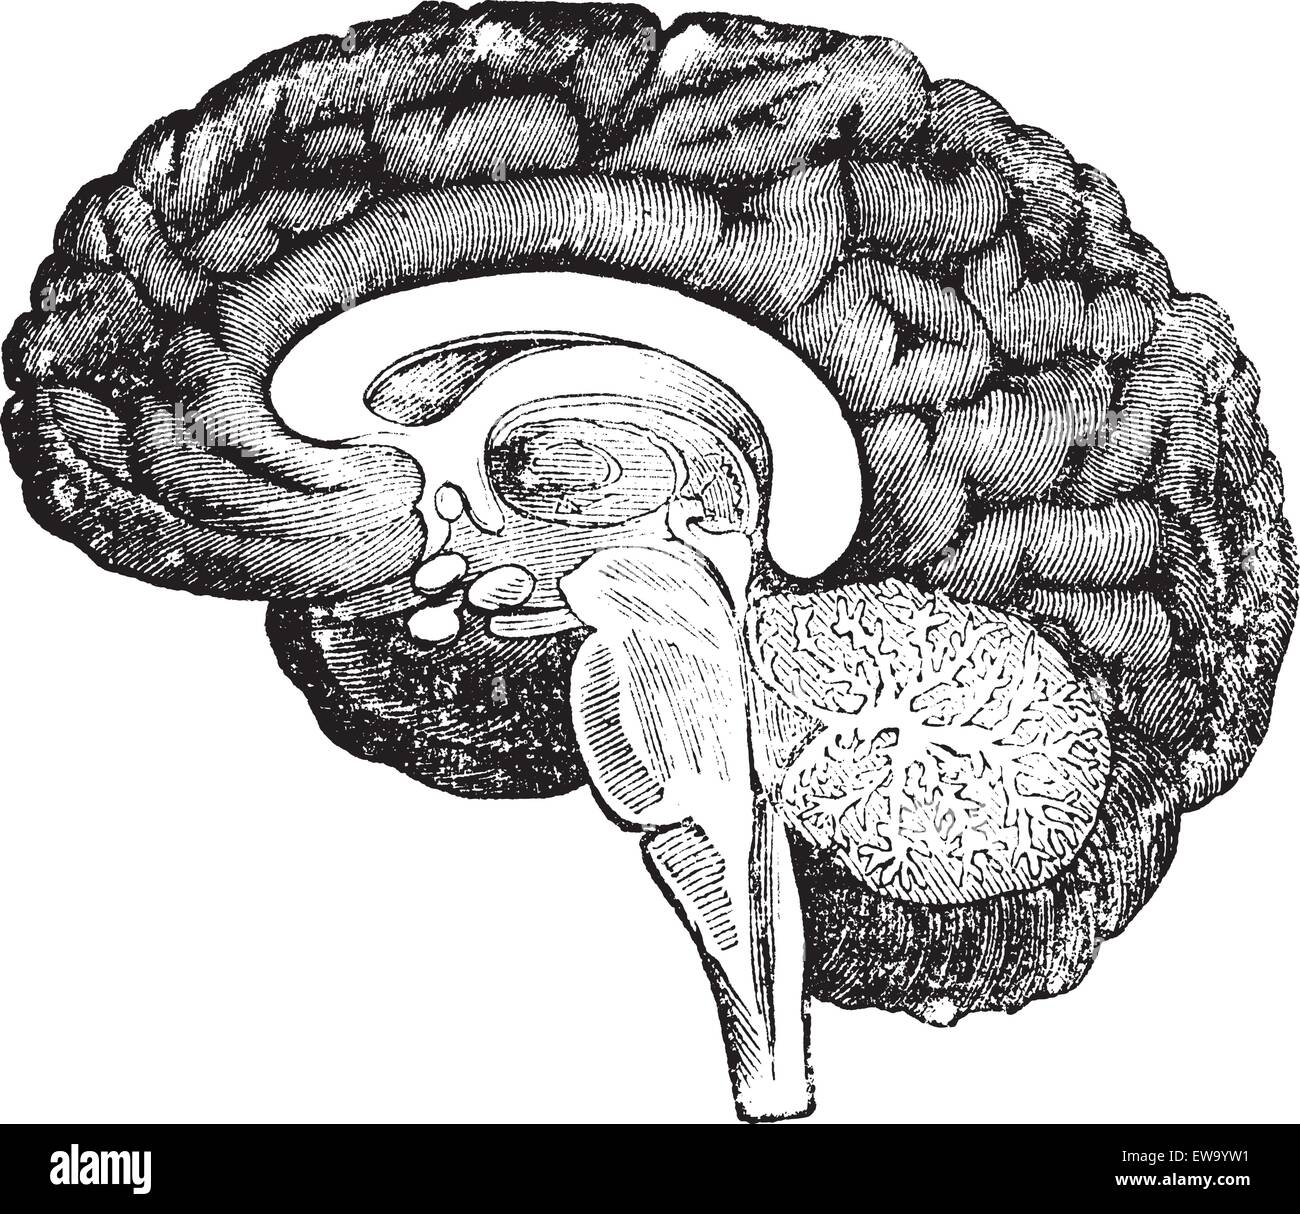 Vertical section of the profile of a human brain vintage engraving, showing the medulla oblongata, pons, cerebellum - Stock Image